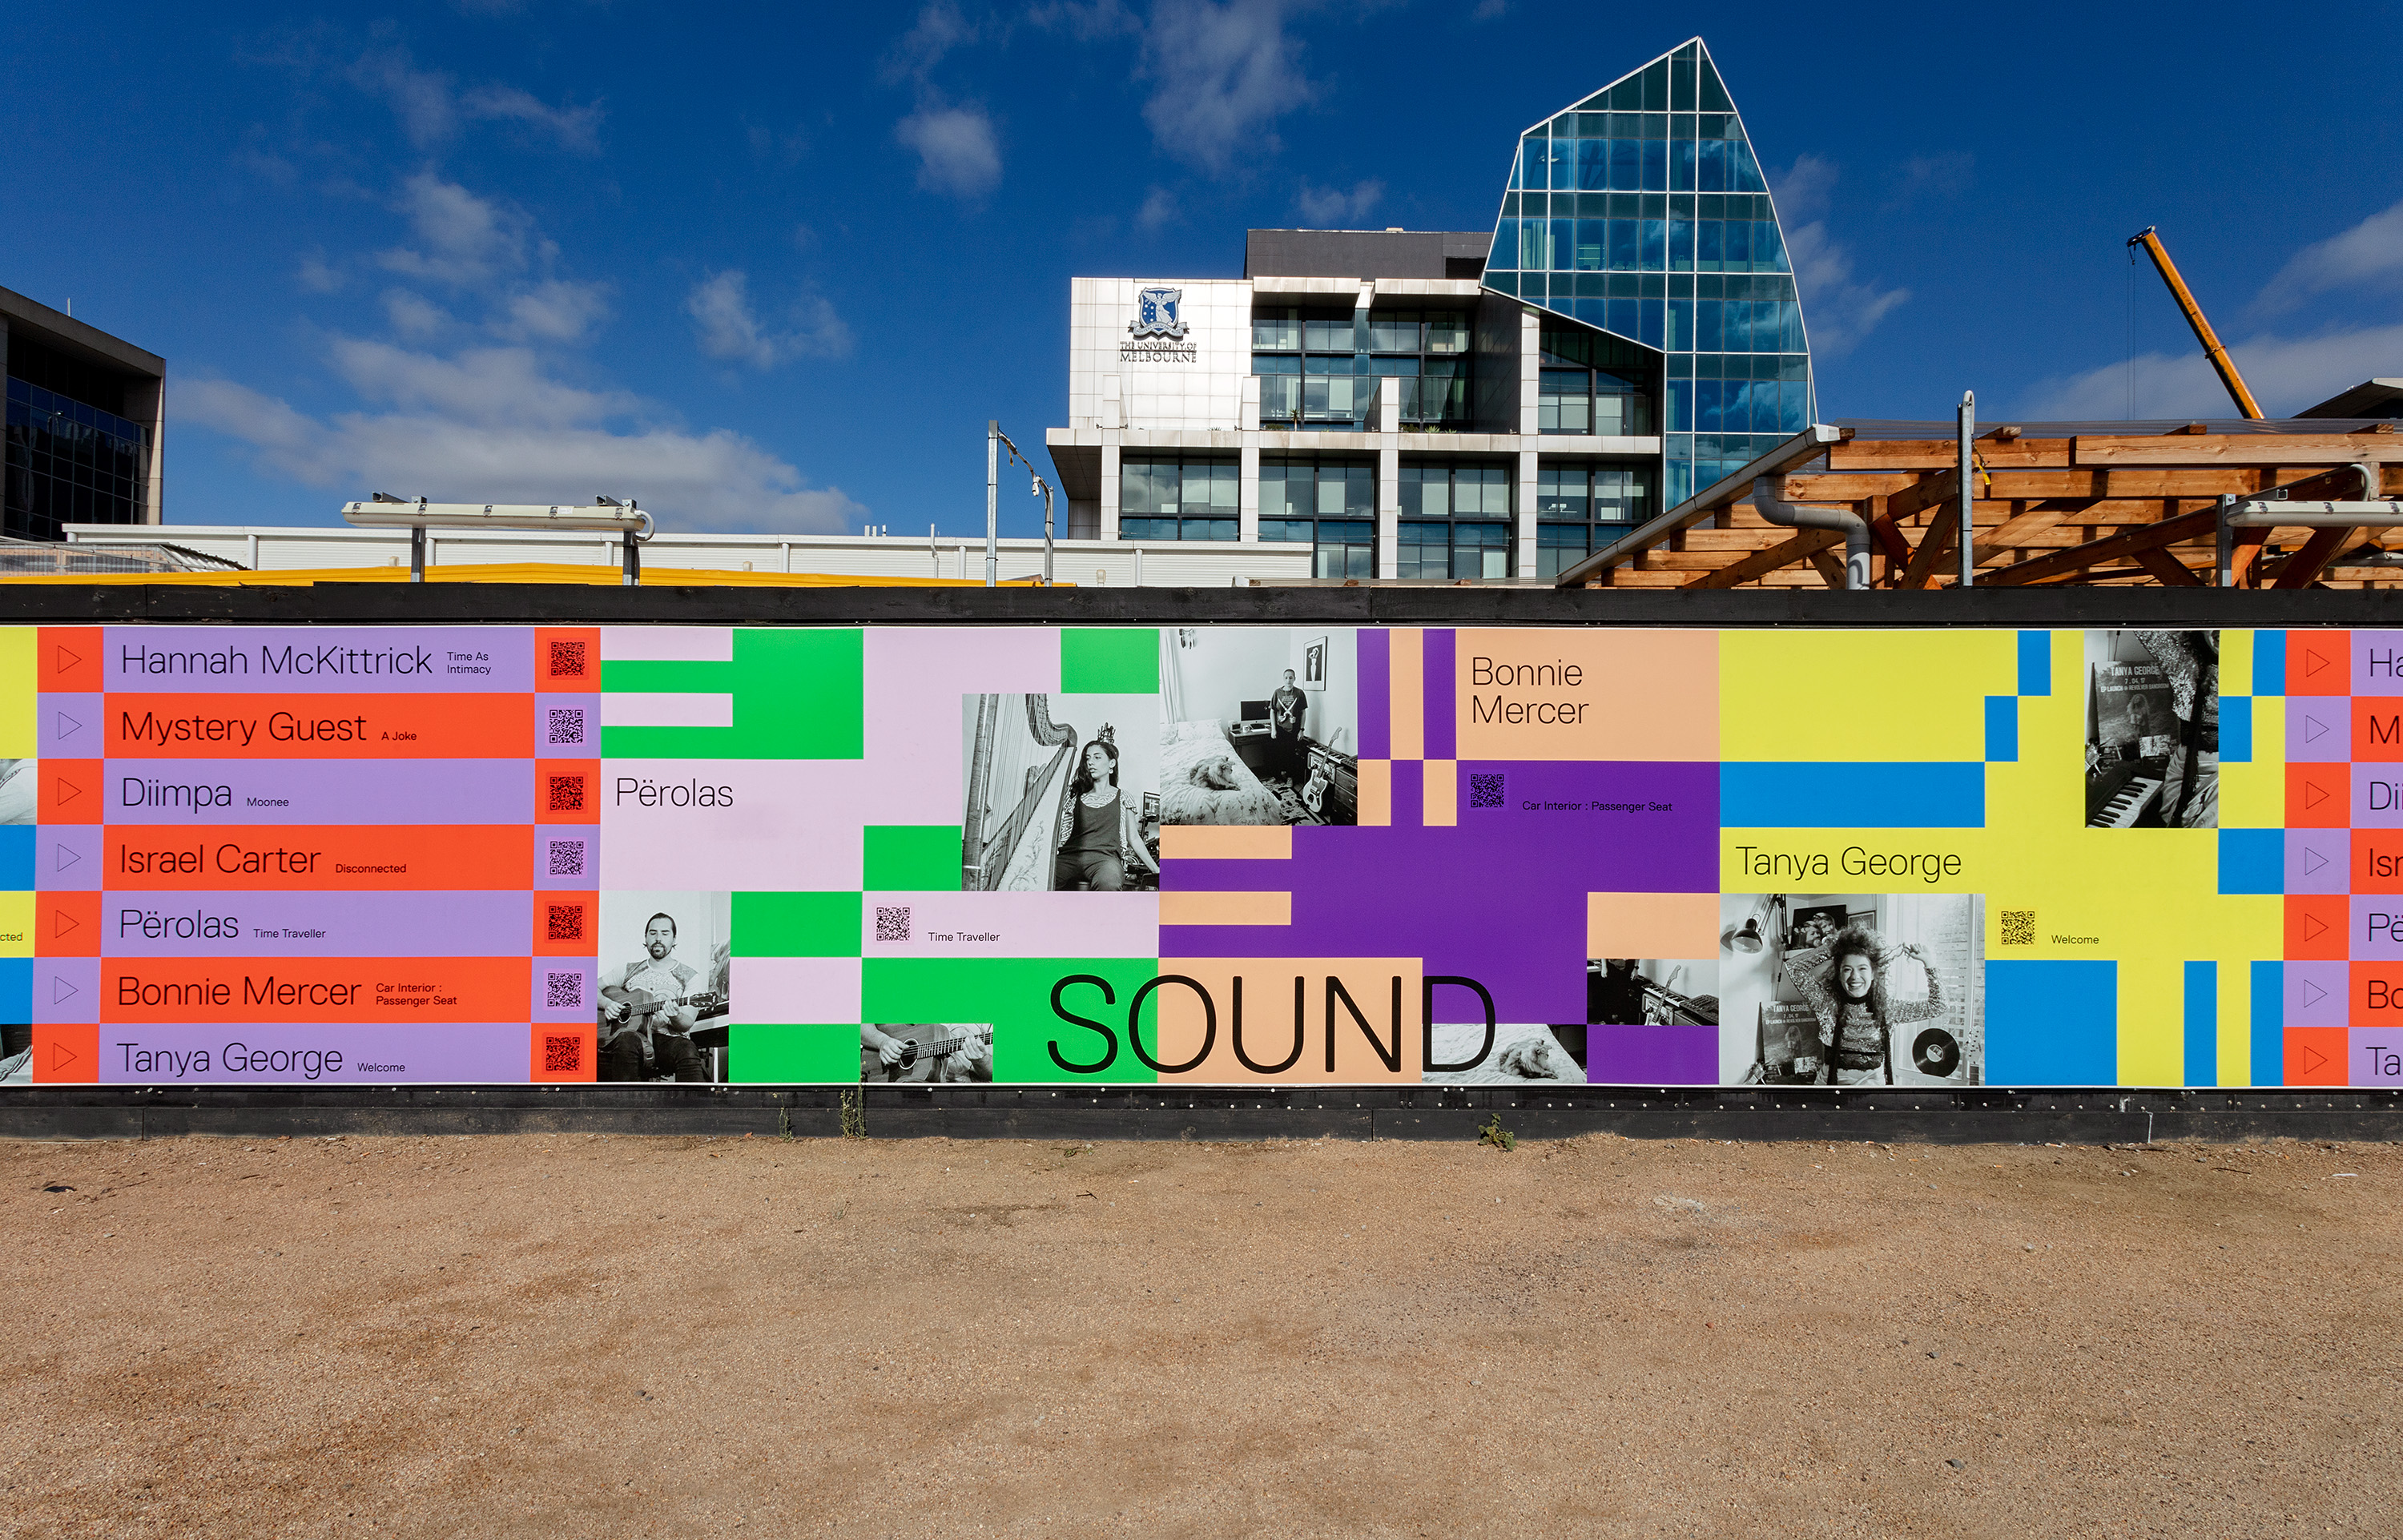 A mural featuring images of musicians and blocks of colours covers construction hoarding in a plaza.